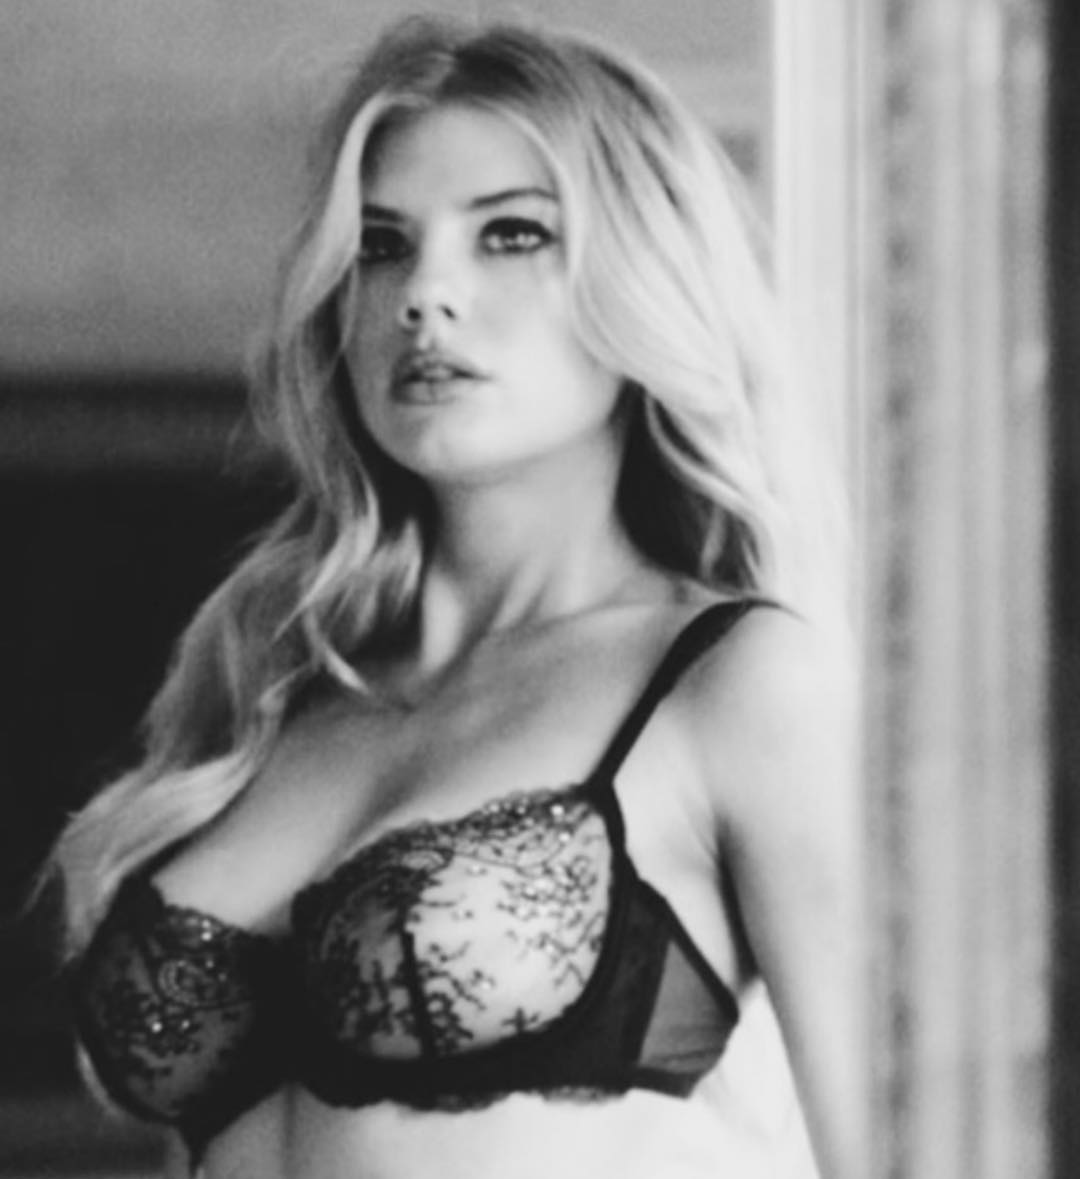 Charlotte Mckinney in Black & White